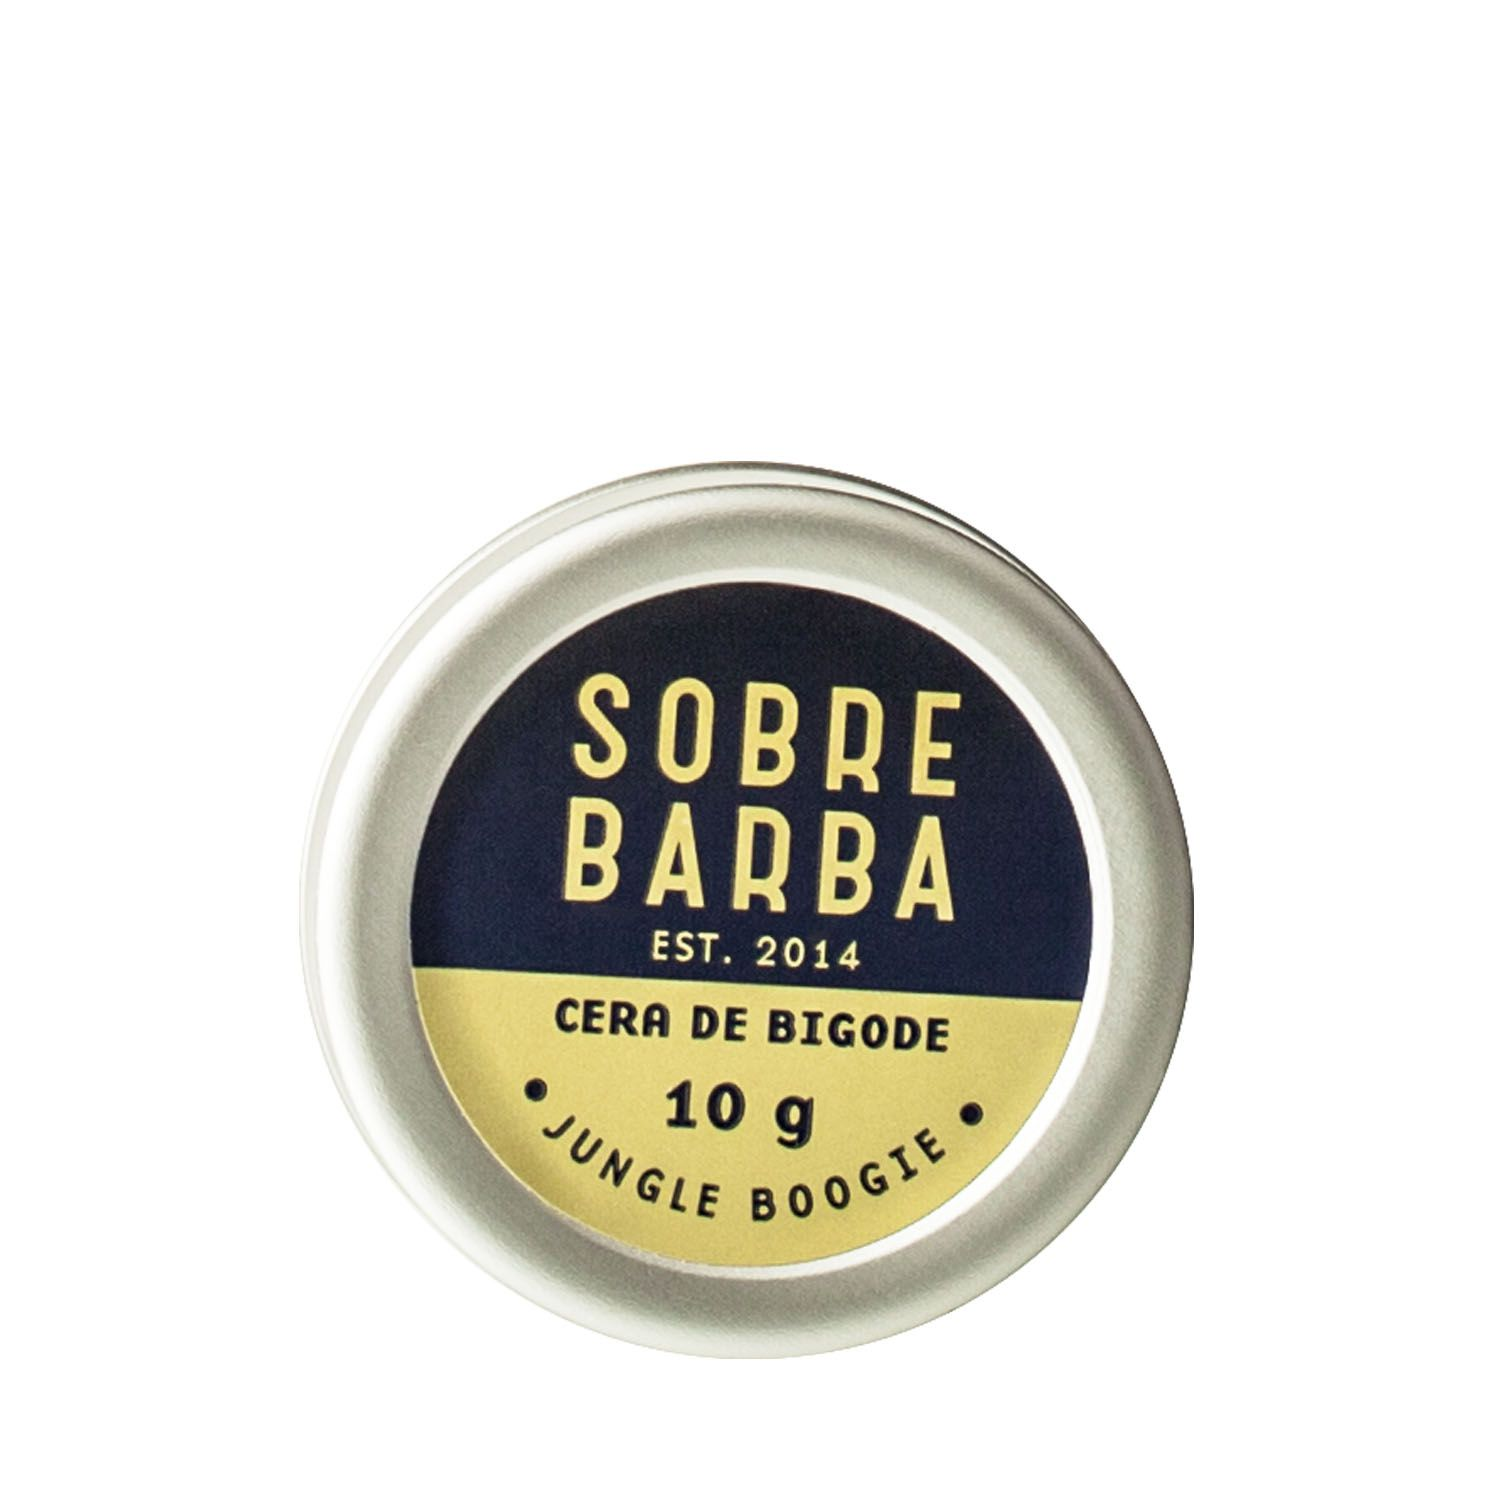 CERA DE BIGODE SOBRE BARBA JUNGLE BOOGIE 10g